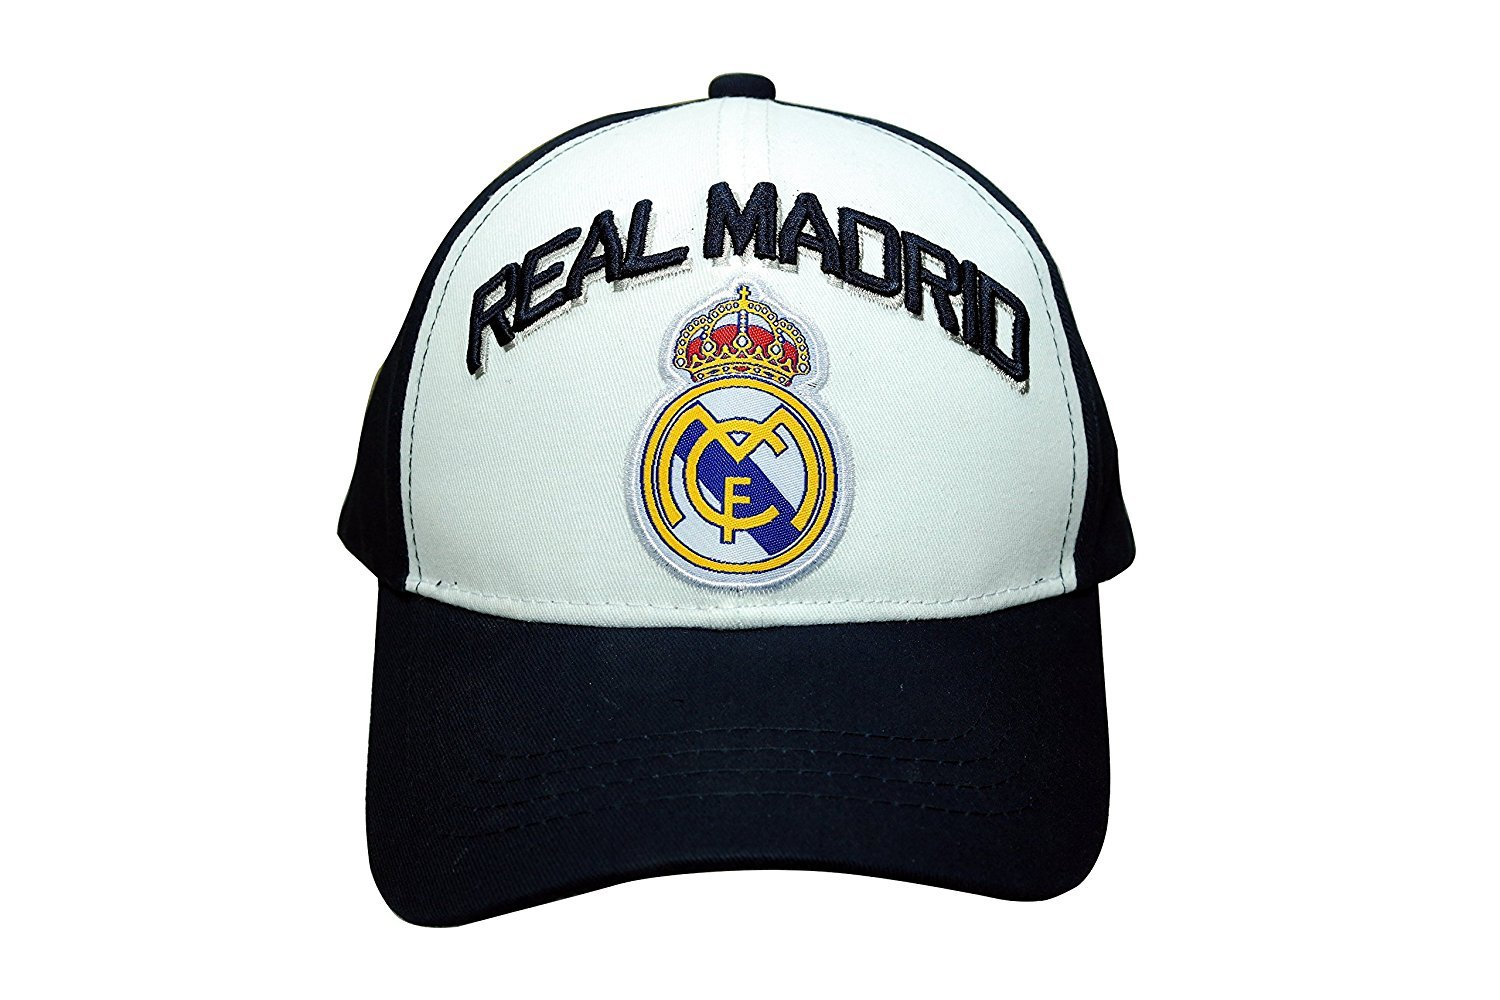 Real Madrid Authentic Official Licensedサッカーキャップ1つサイズ-001   B00VJ4MQYO